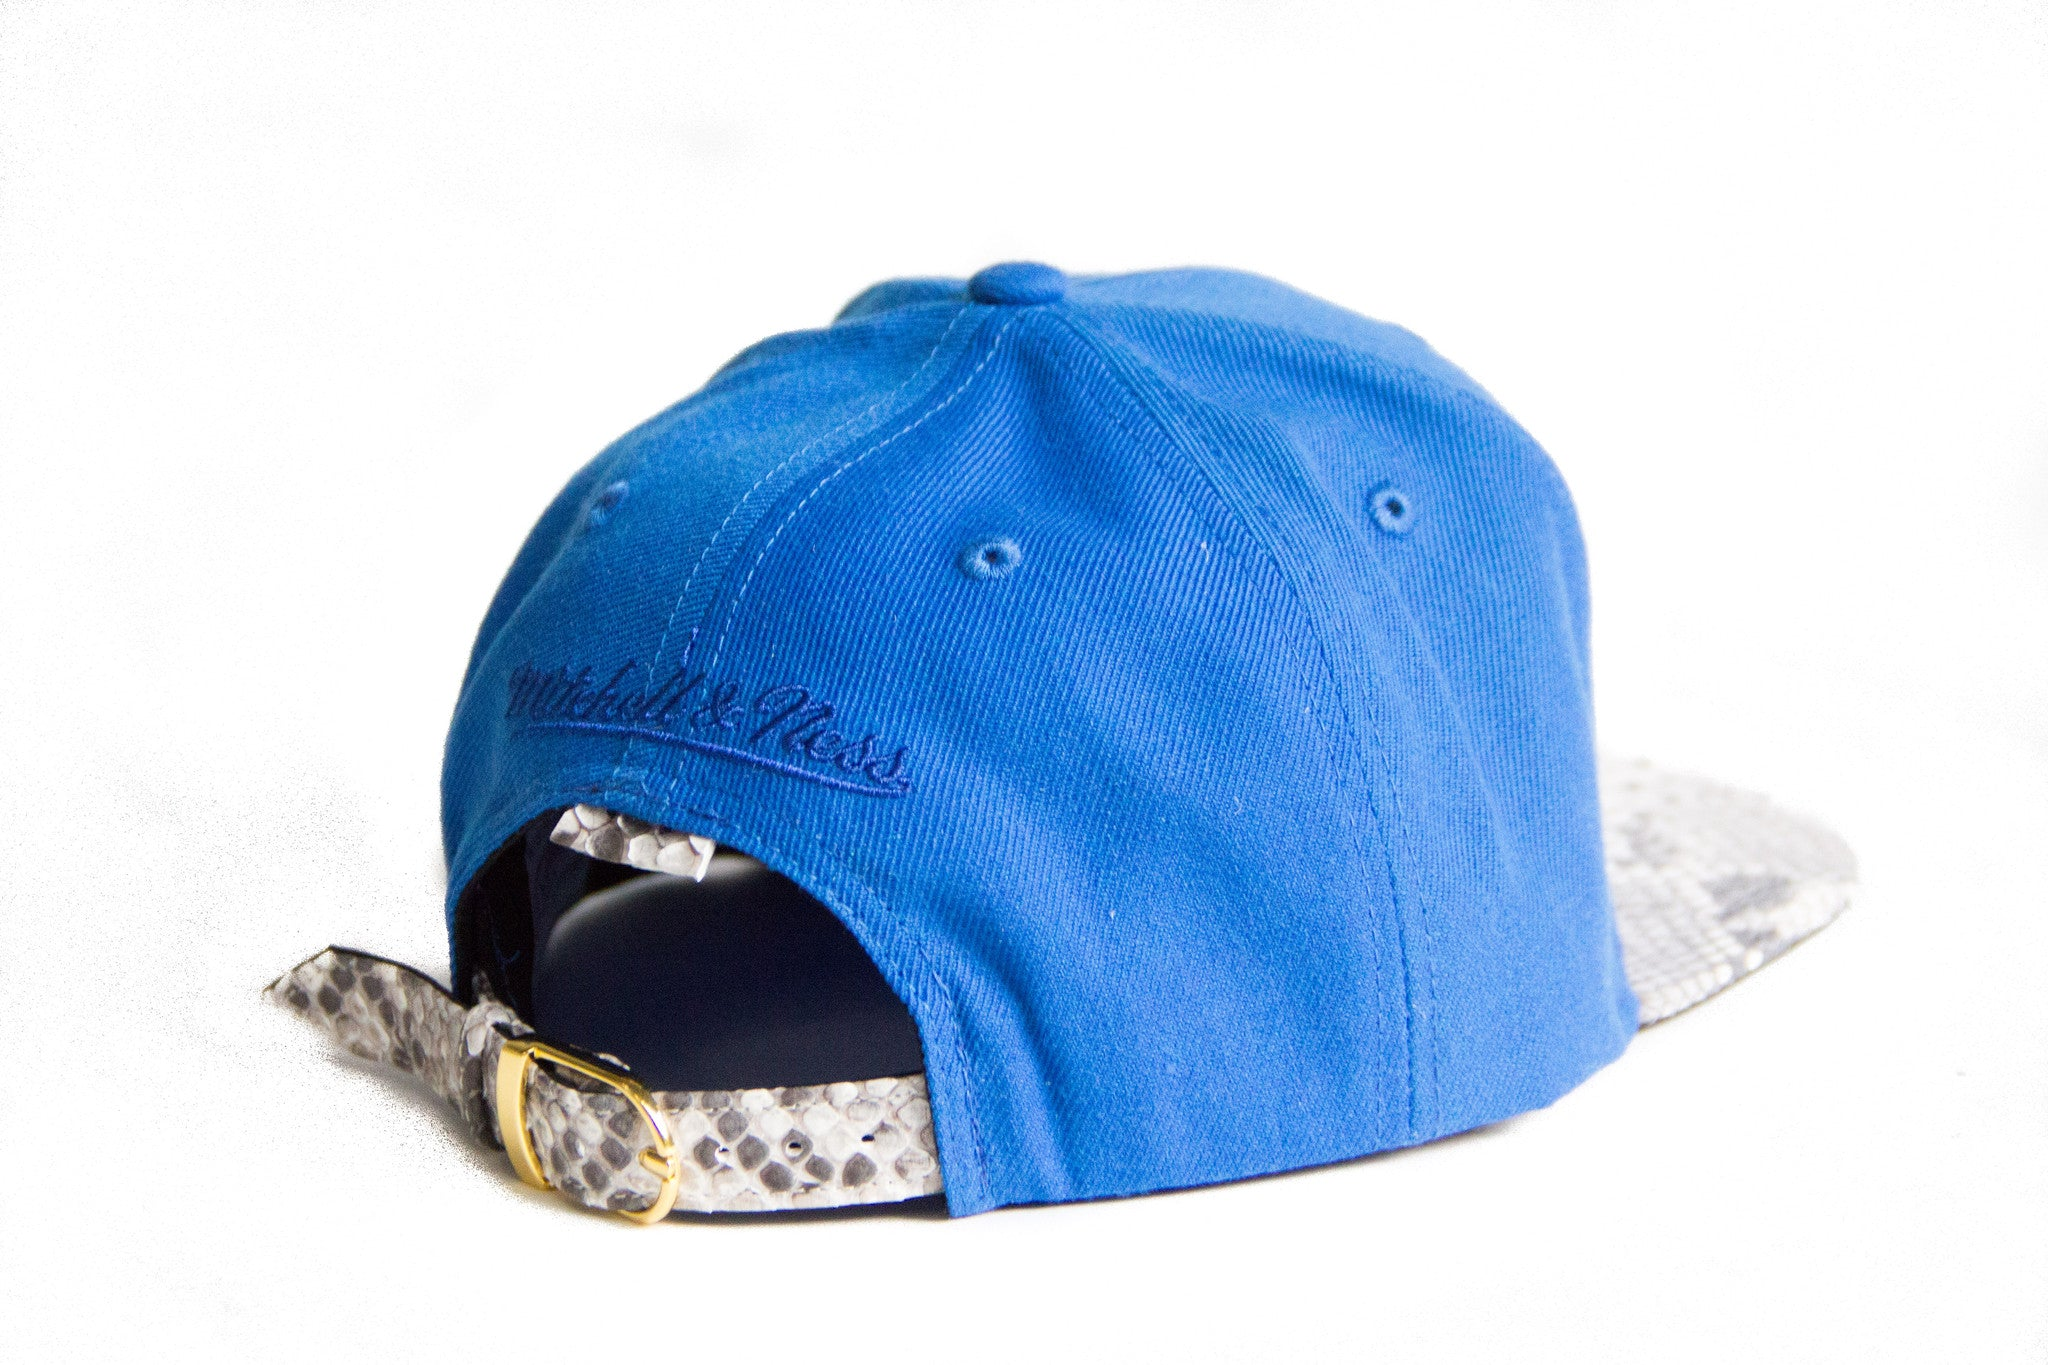 HATSURGEON x Mitchell & Ness Golden State Warriors Special Script Strapback